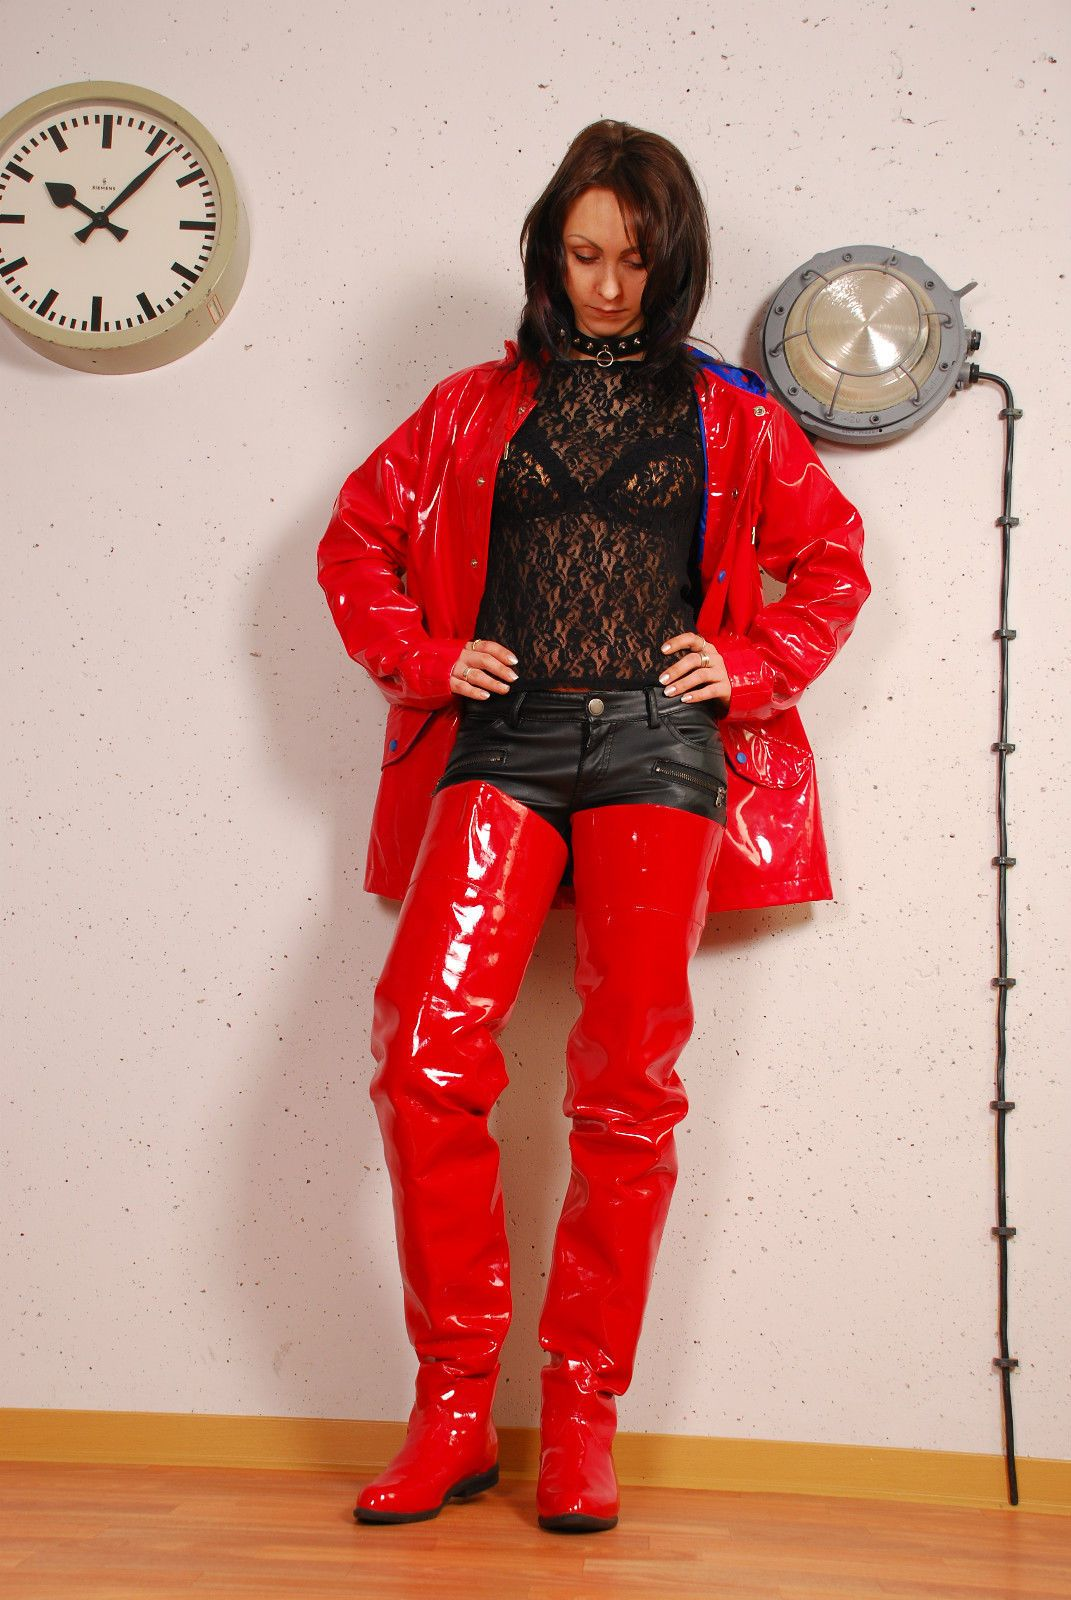 Lack Kleidung Pin Auf Lack Plastic Pvc Latex And Boots